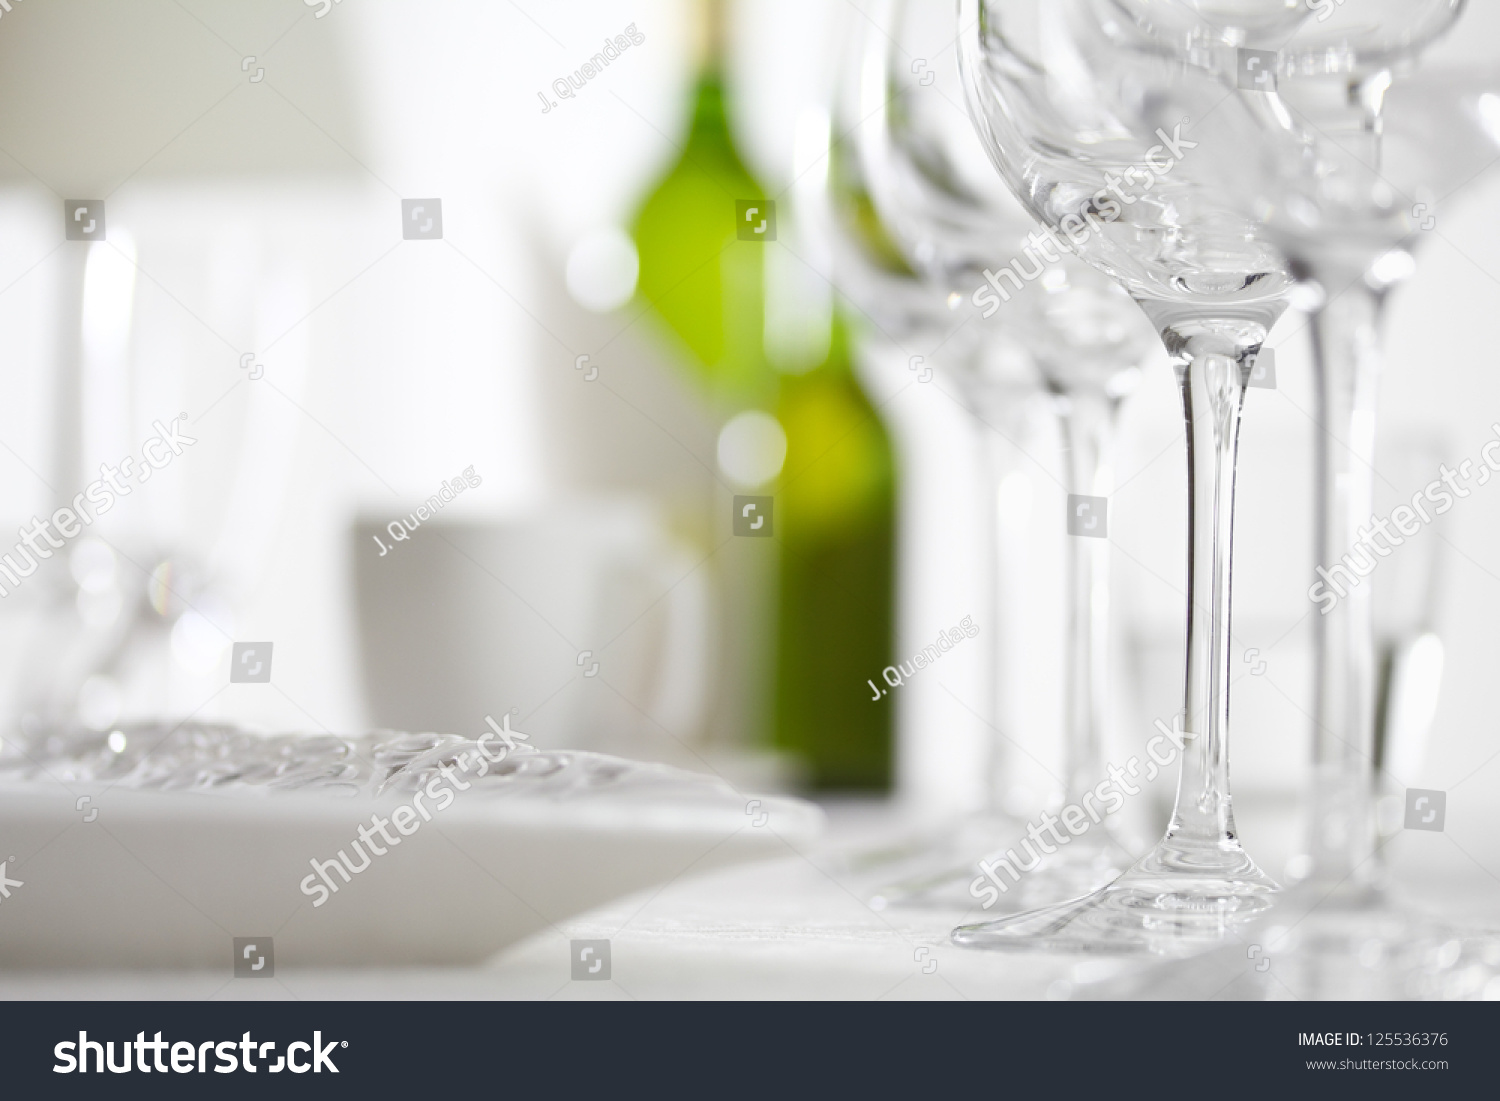 Elegant dinner table setting - Luxury Elegant Dinner Table Setting In Restaurant Or Hotel With Wine Glasses And White Wine